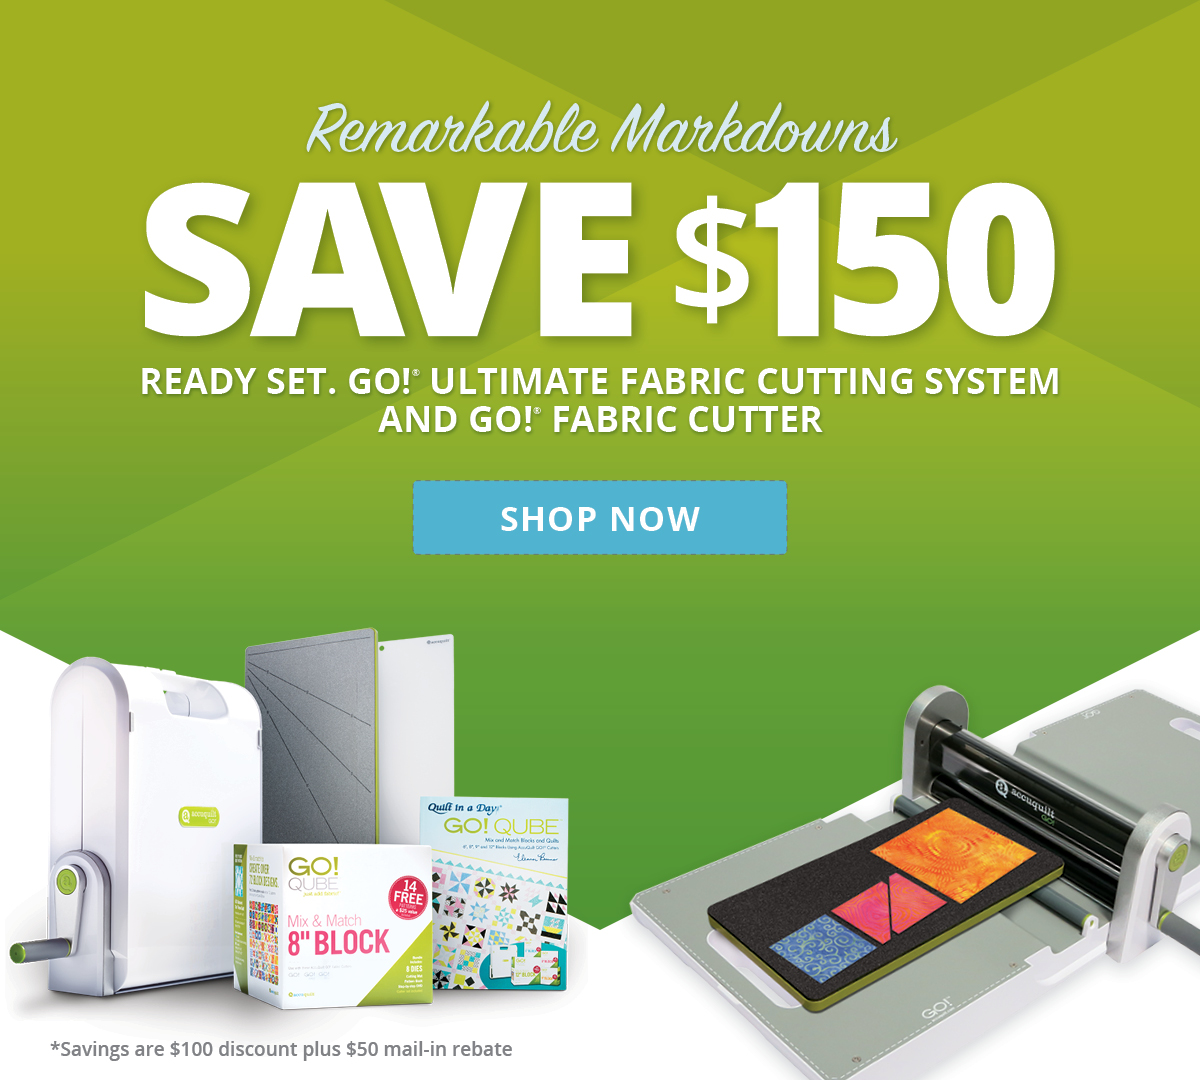 Remarkable Markdowns | Save $150 on Ready. Set. GO! and GO! Fabric Cutters